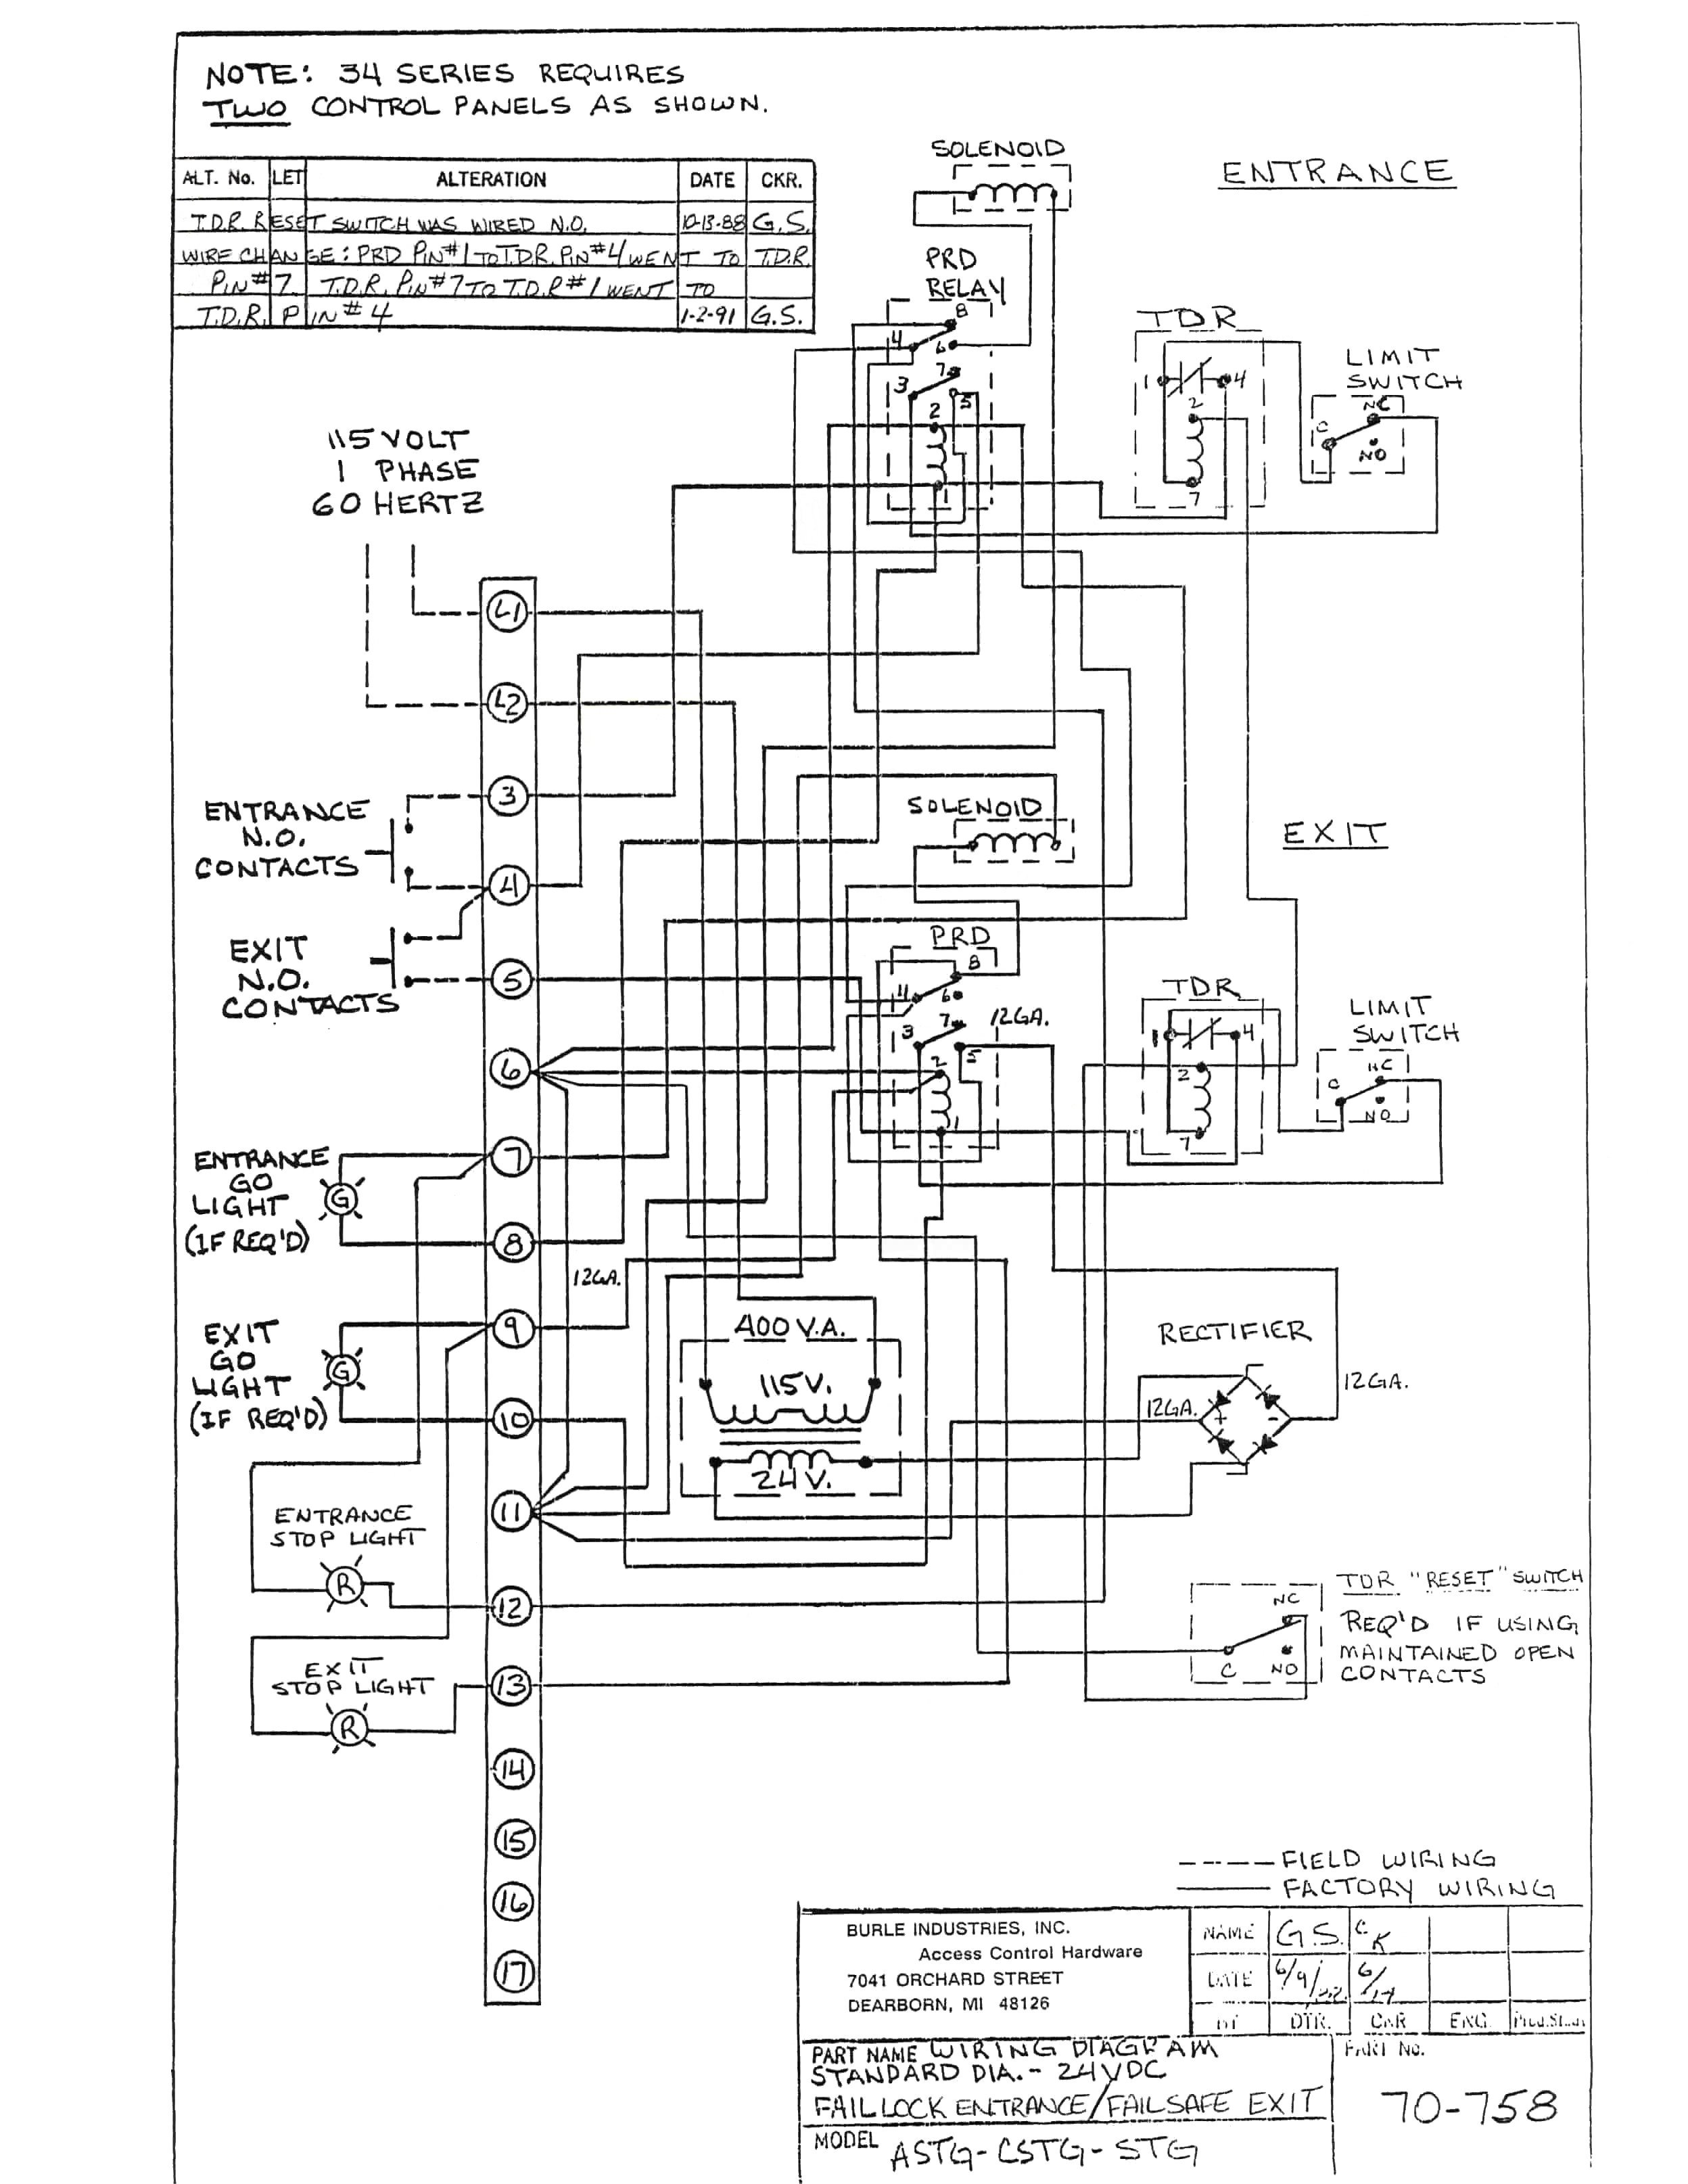 Trane Hvac Wiring Diagrams Model Raucc304cx13aod000020 - Wiring Diagram